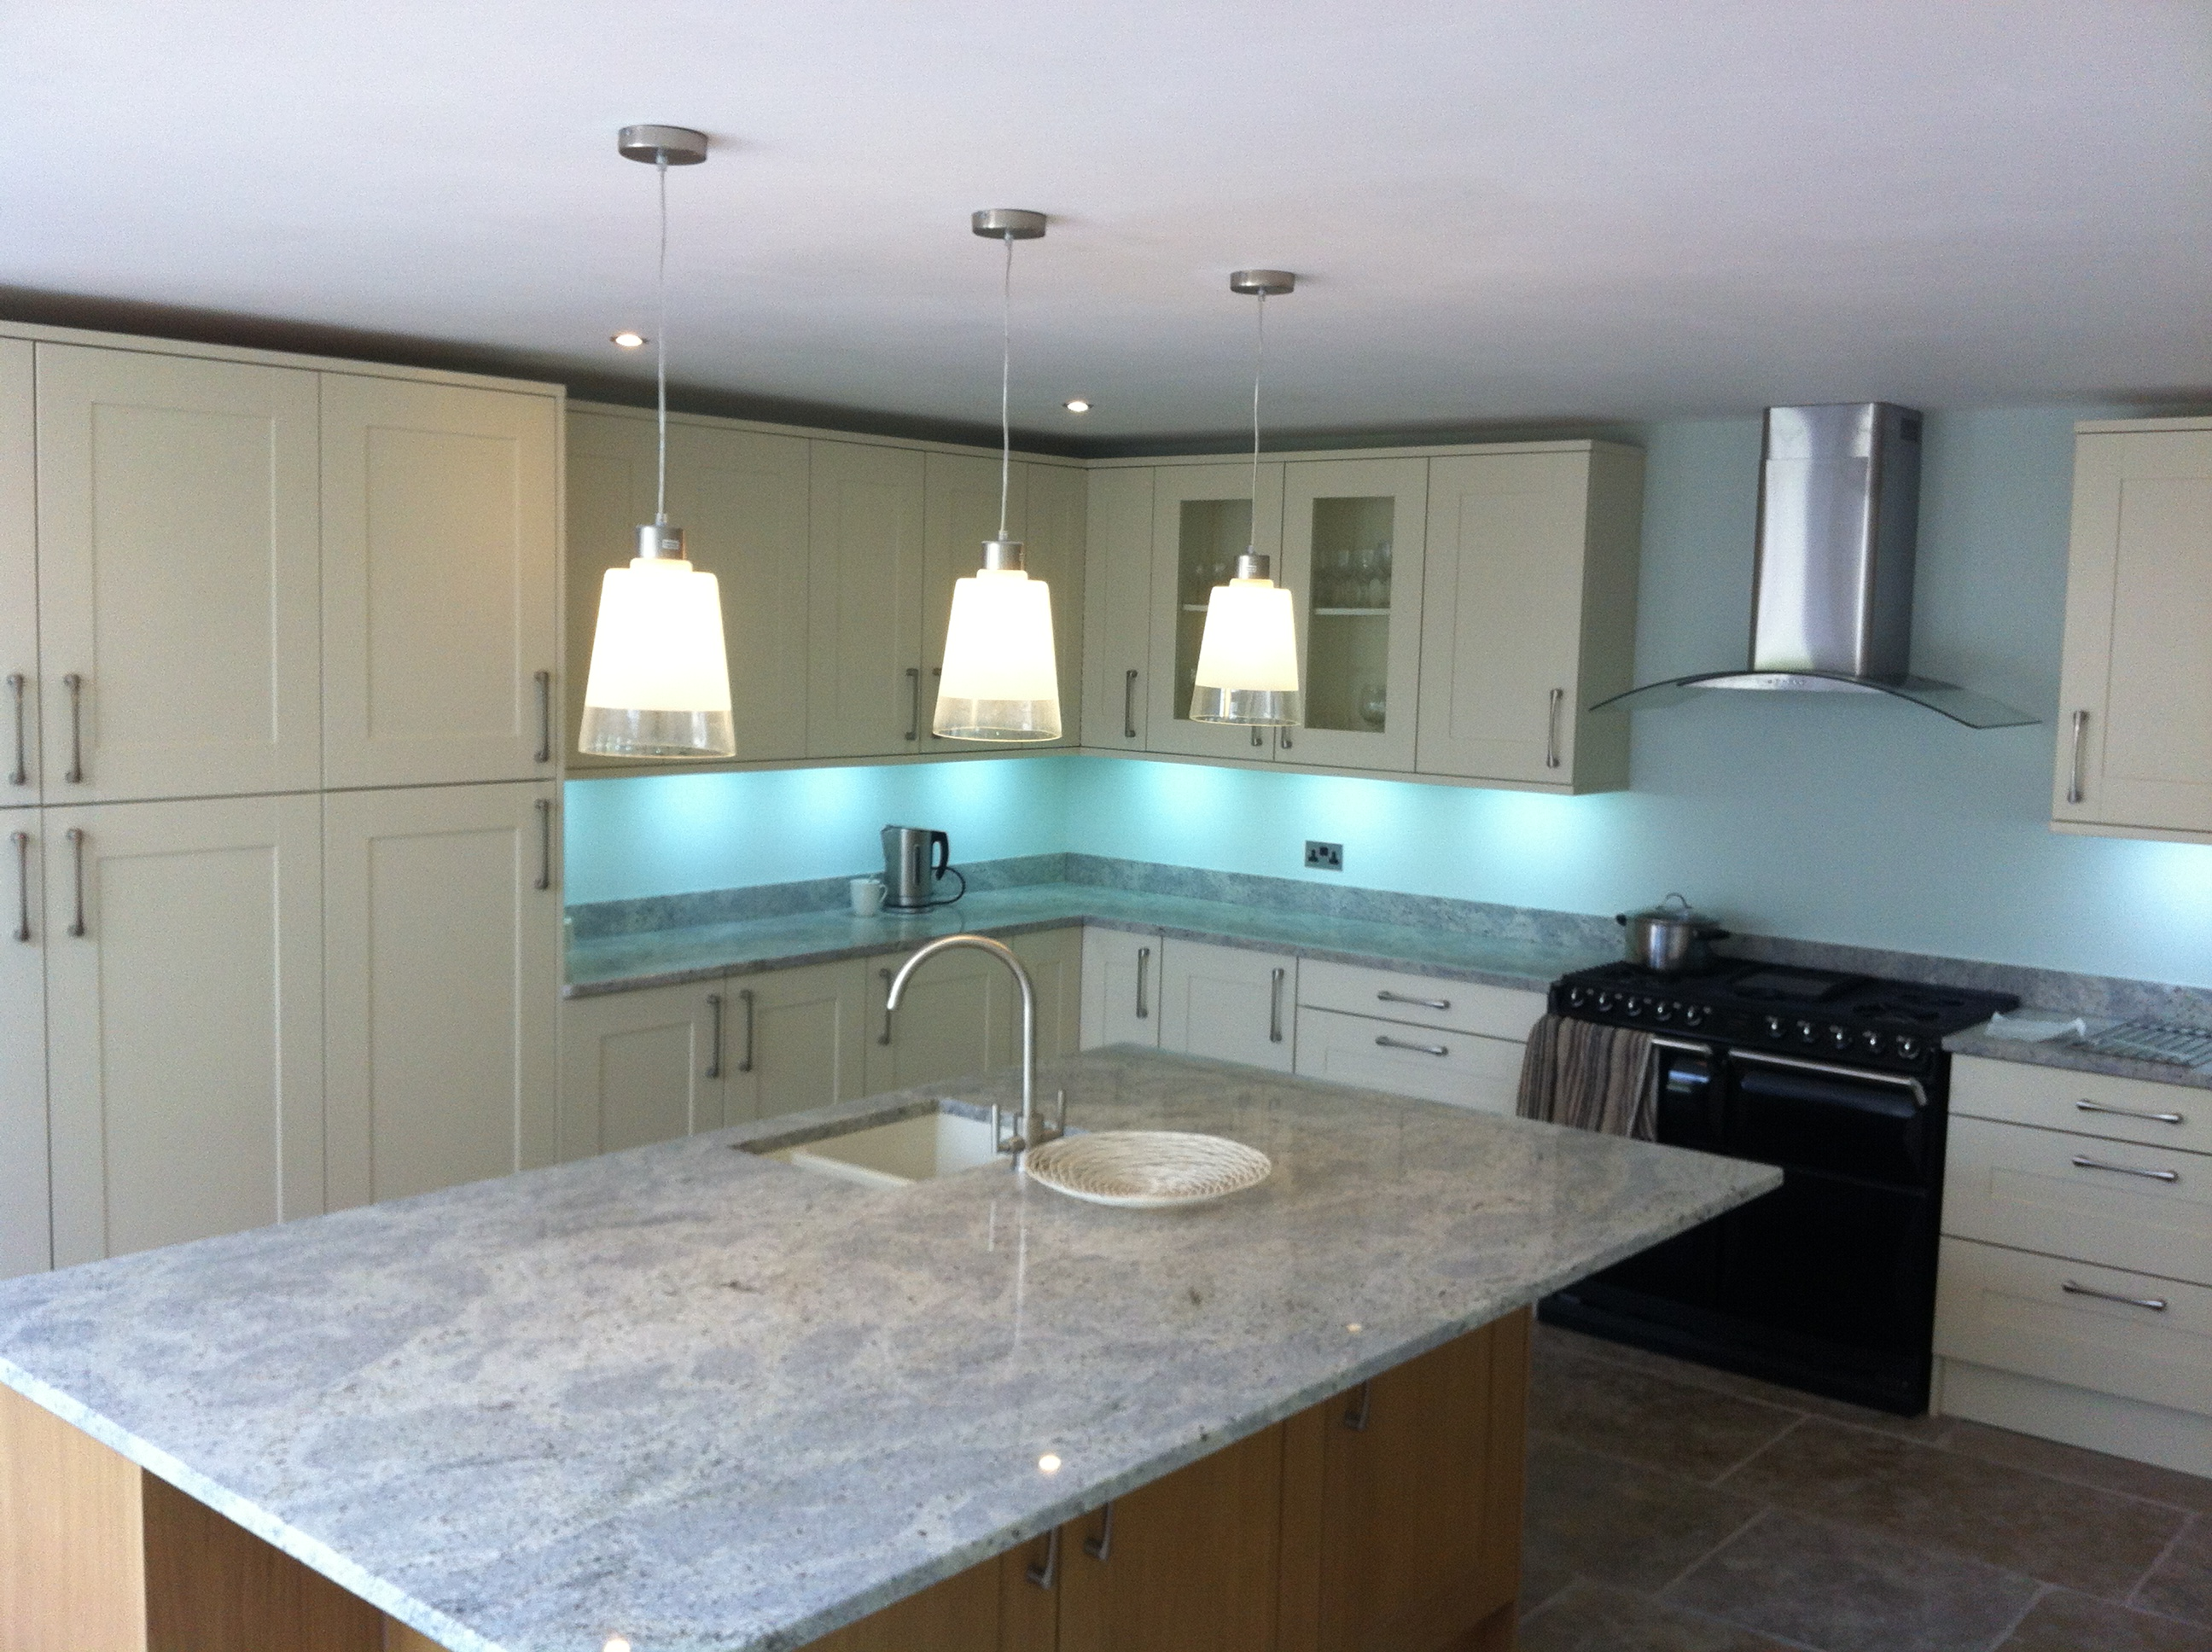 Luxury Kitchen Electrical Fit Wiring And Installation In Warwick Light Fittings